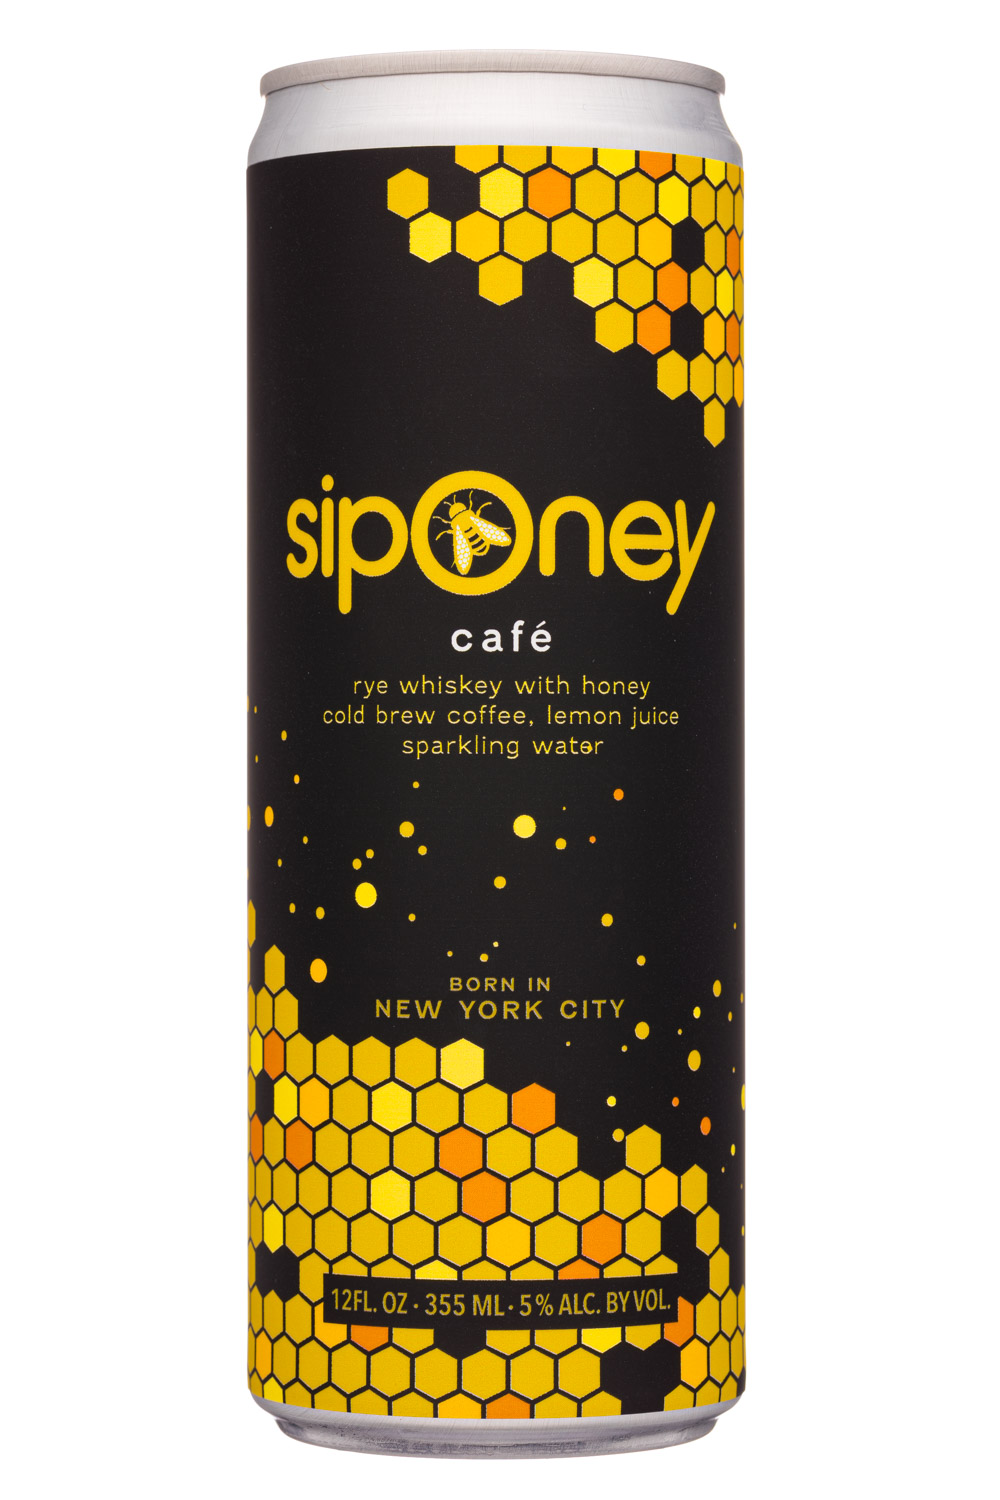 Cafe: Rye Whiskey with Honey Cold Brew Coffee, Lemon Juice Sparkling Water